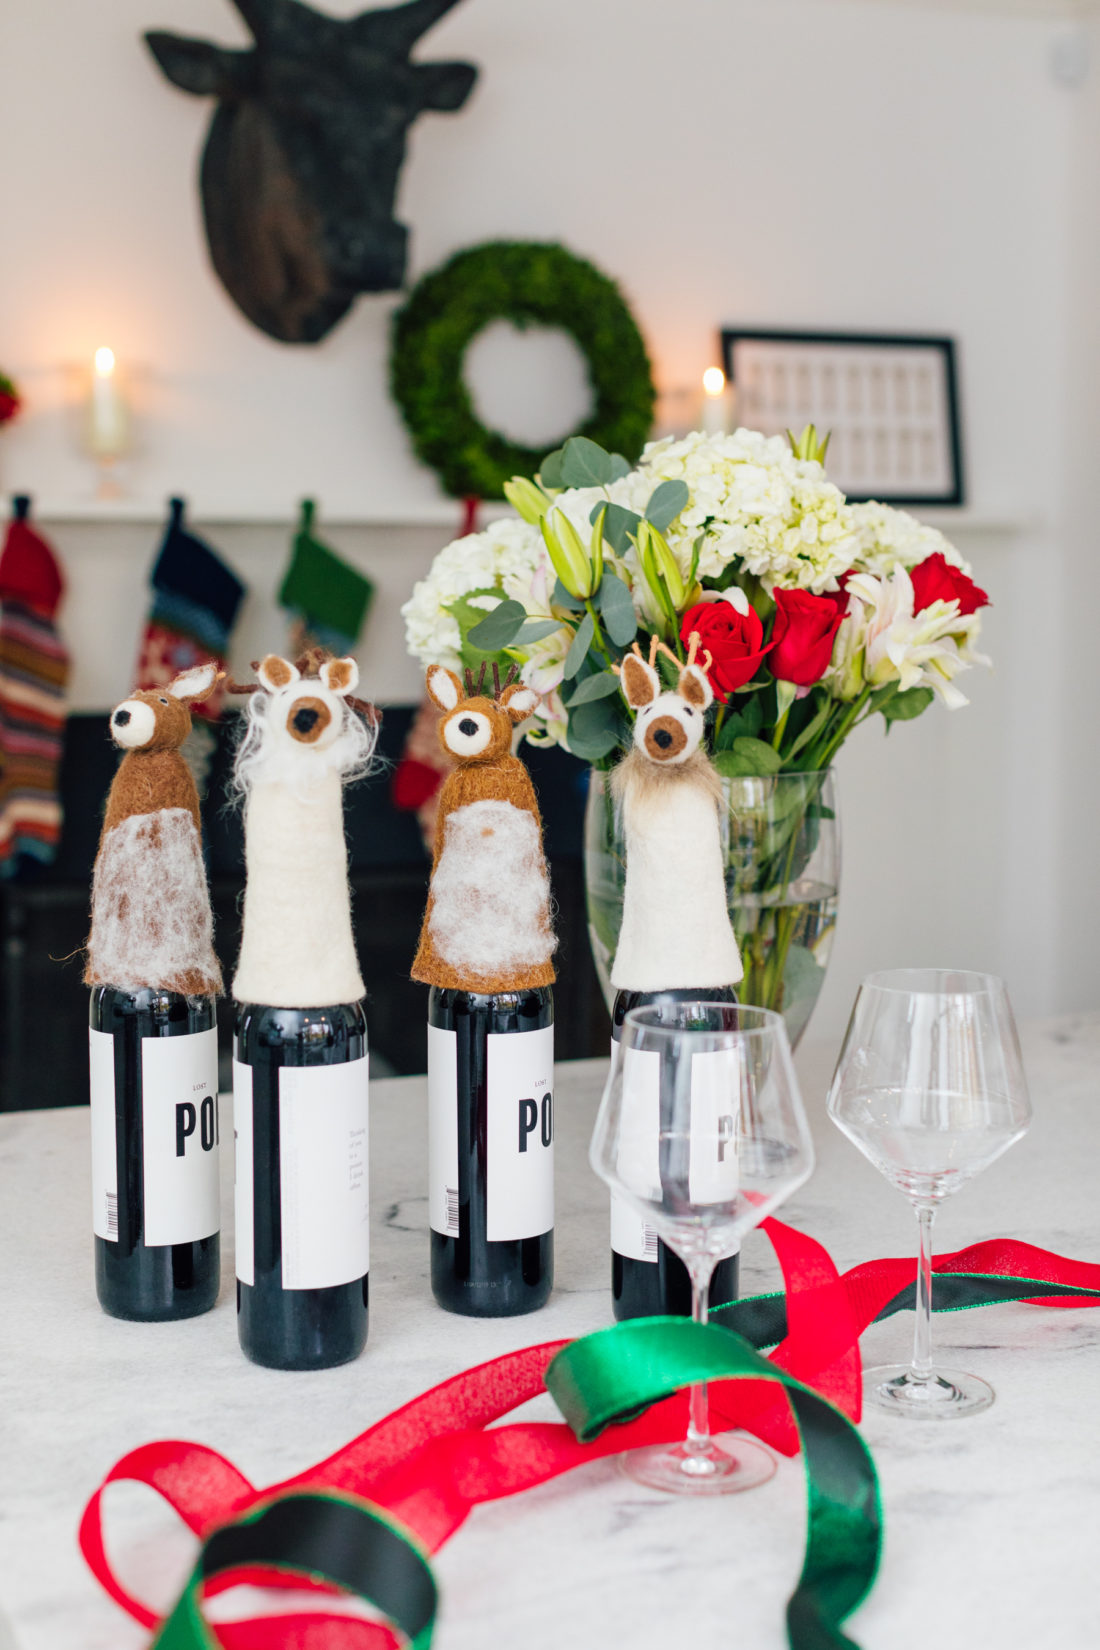 Eva Amurri Martino shares her favorite gifts from Garnet Hill